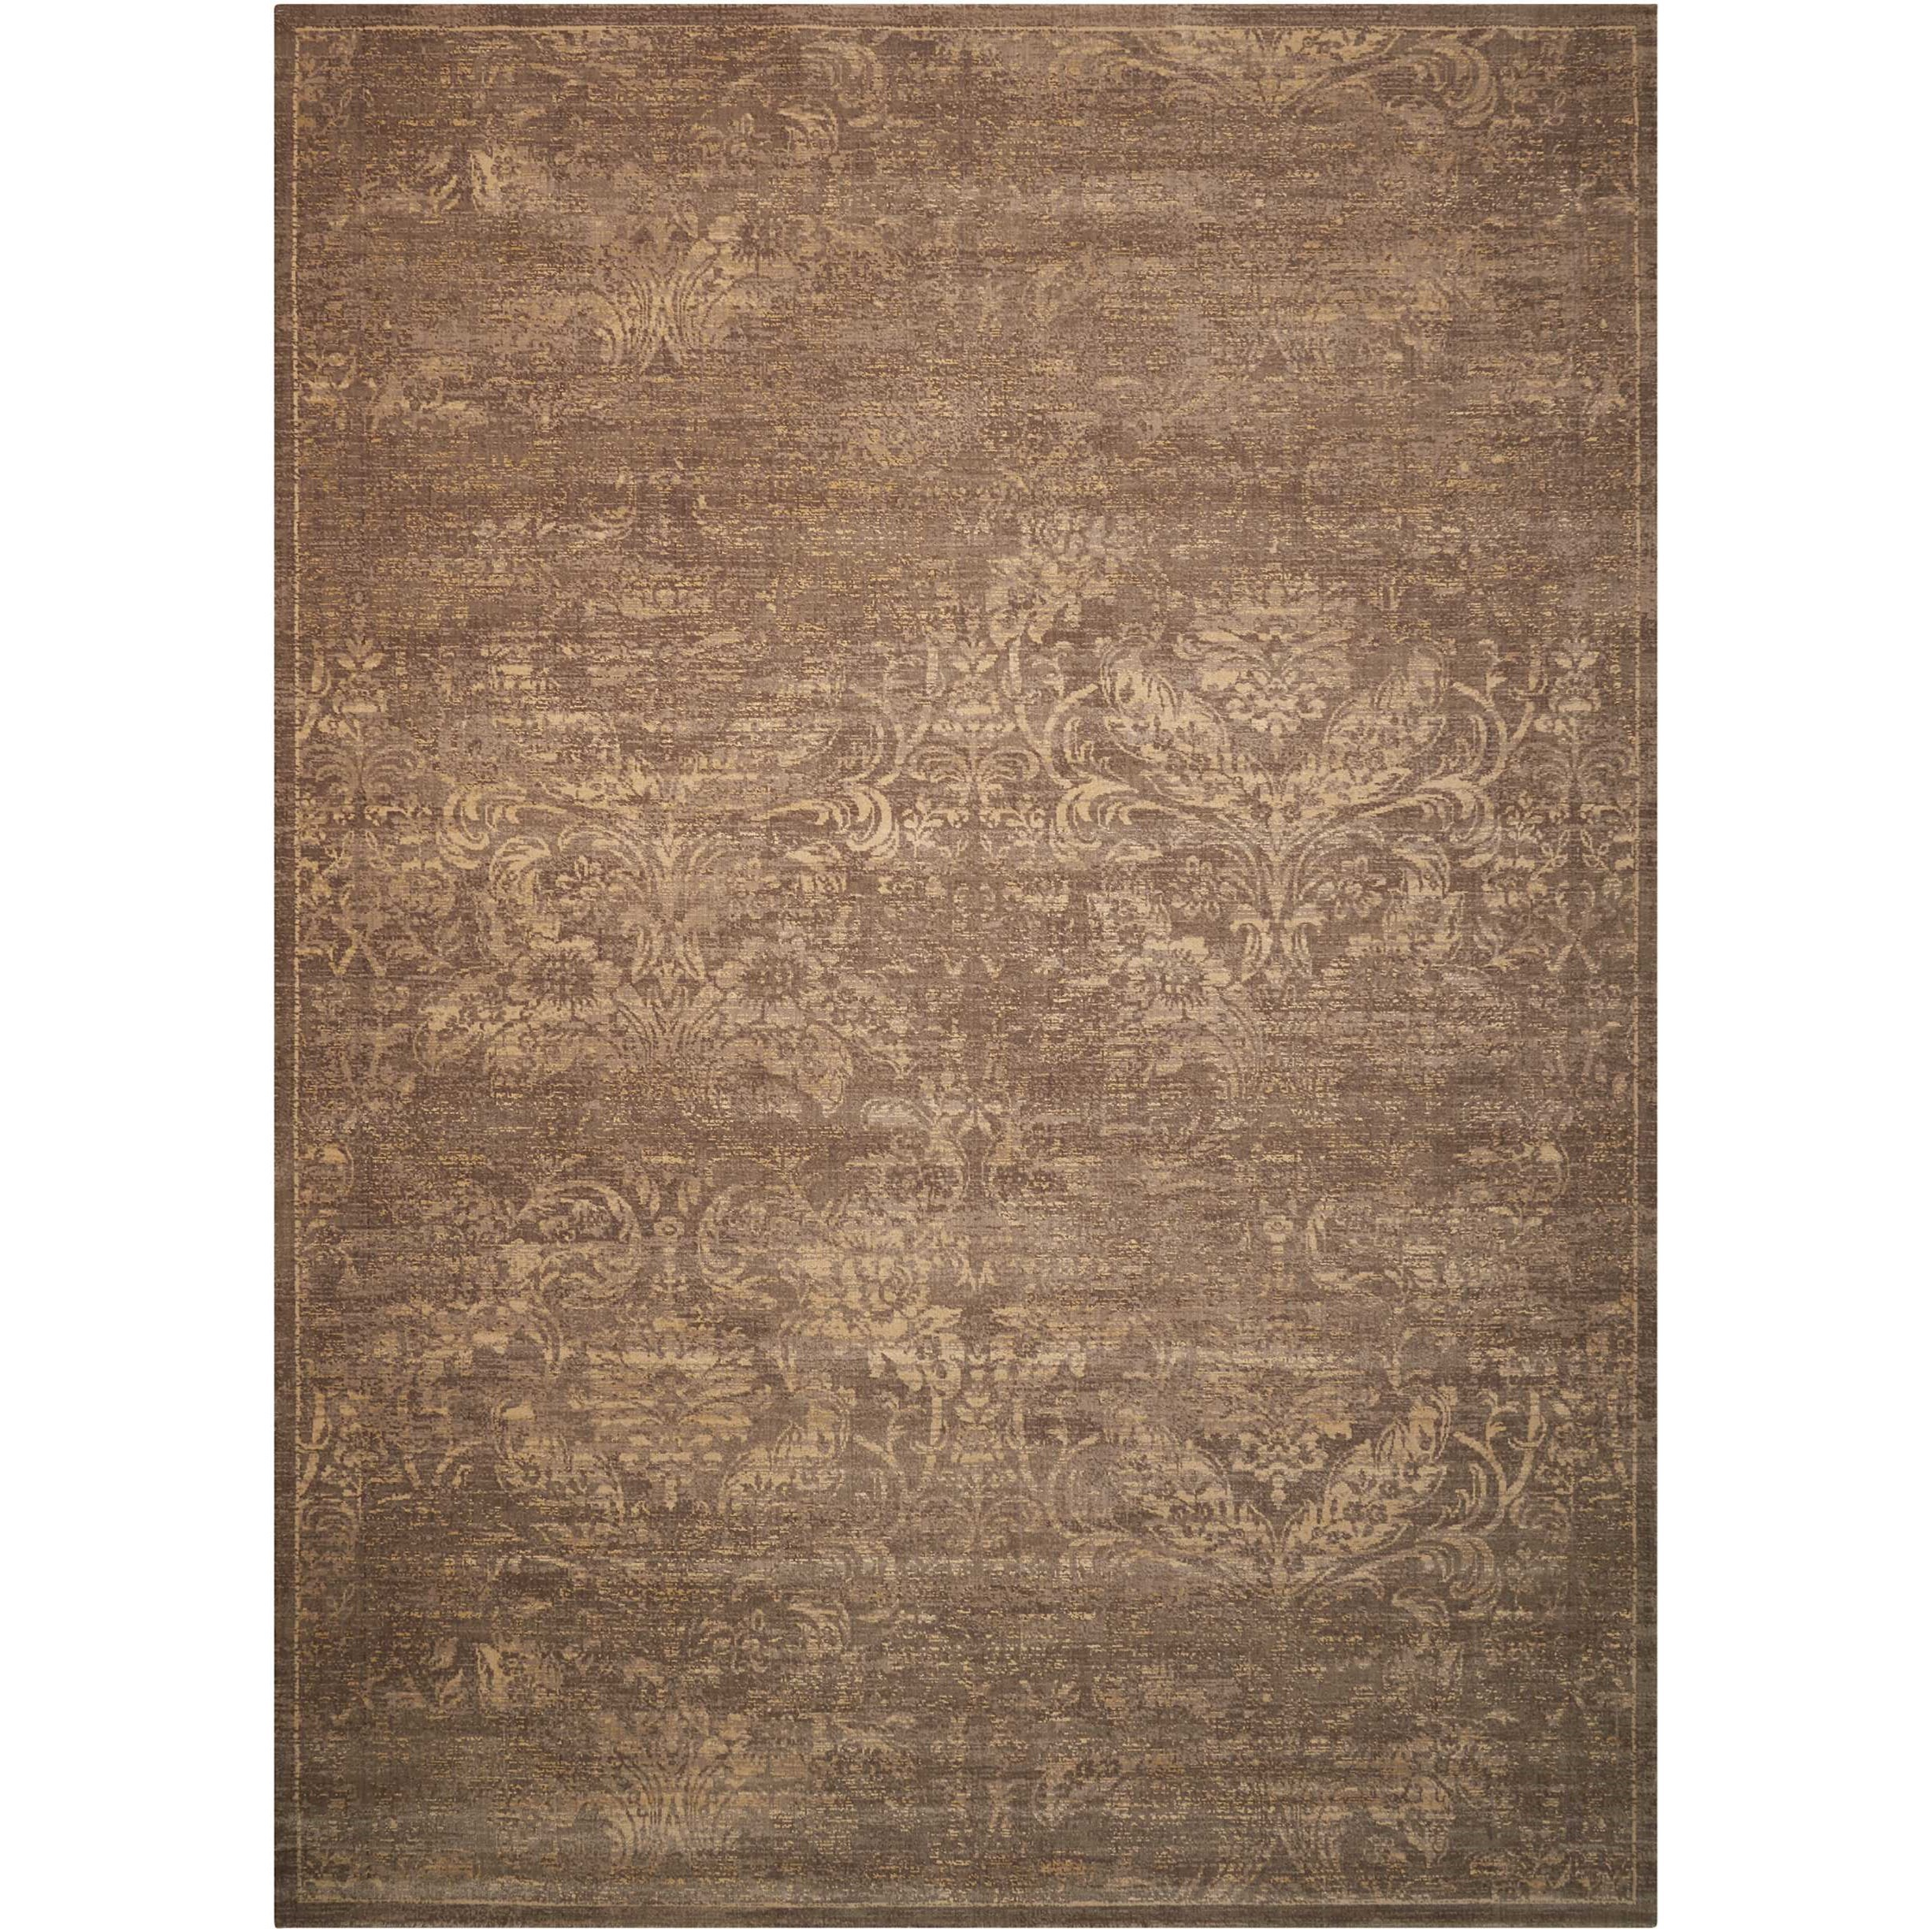 "Silken Allure 9'9"" x 13'9"" Mushroom Rectangle Rug by Nourison at Home Collections Furniture"